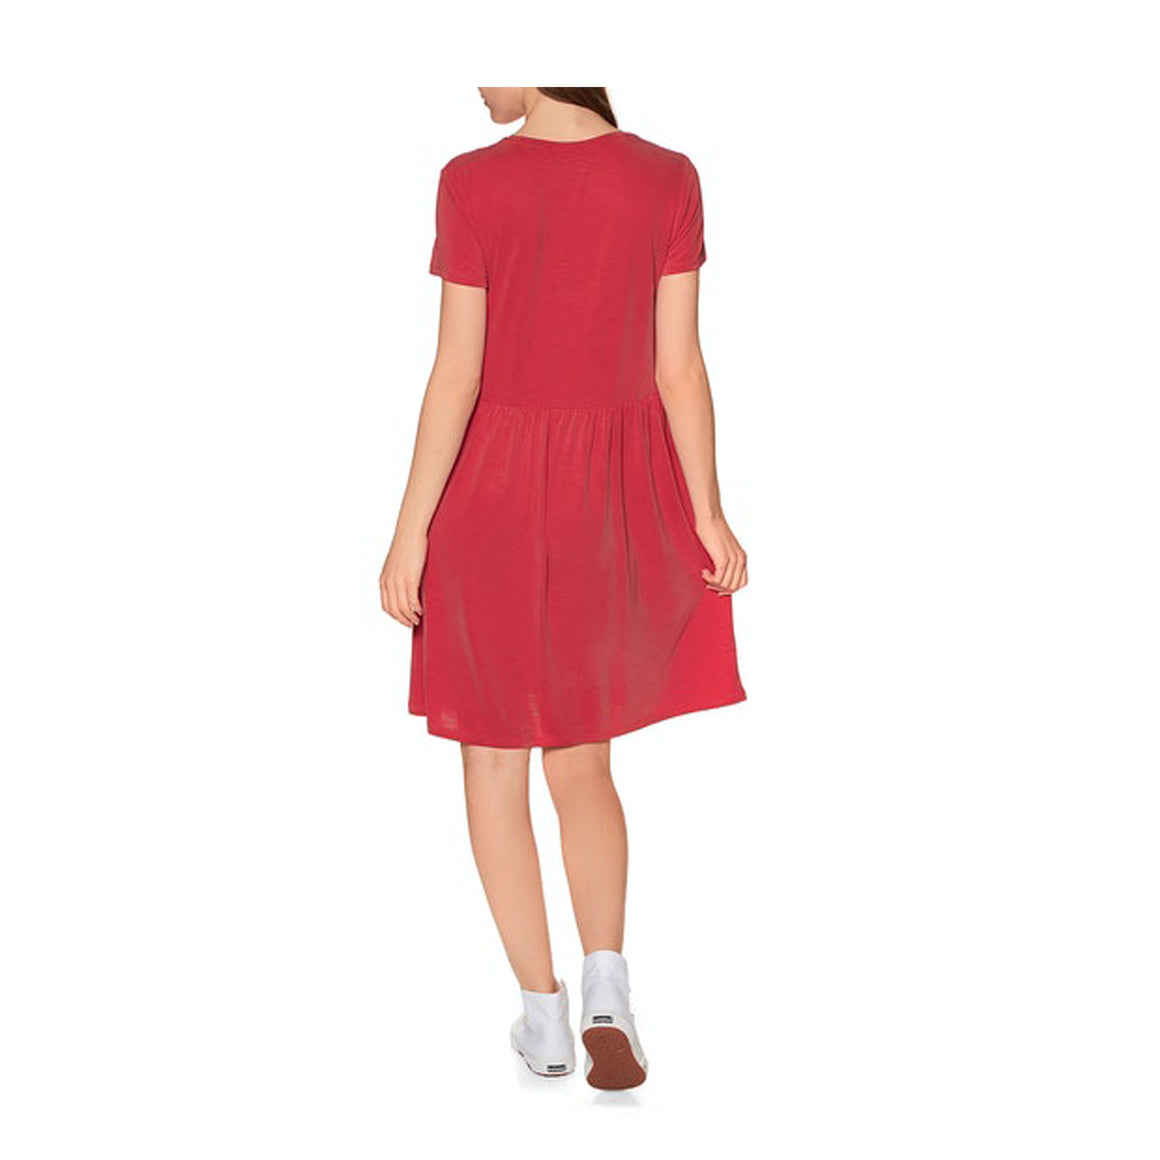 Smocked Tshirt Dress for Women in Apple Red